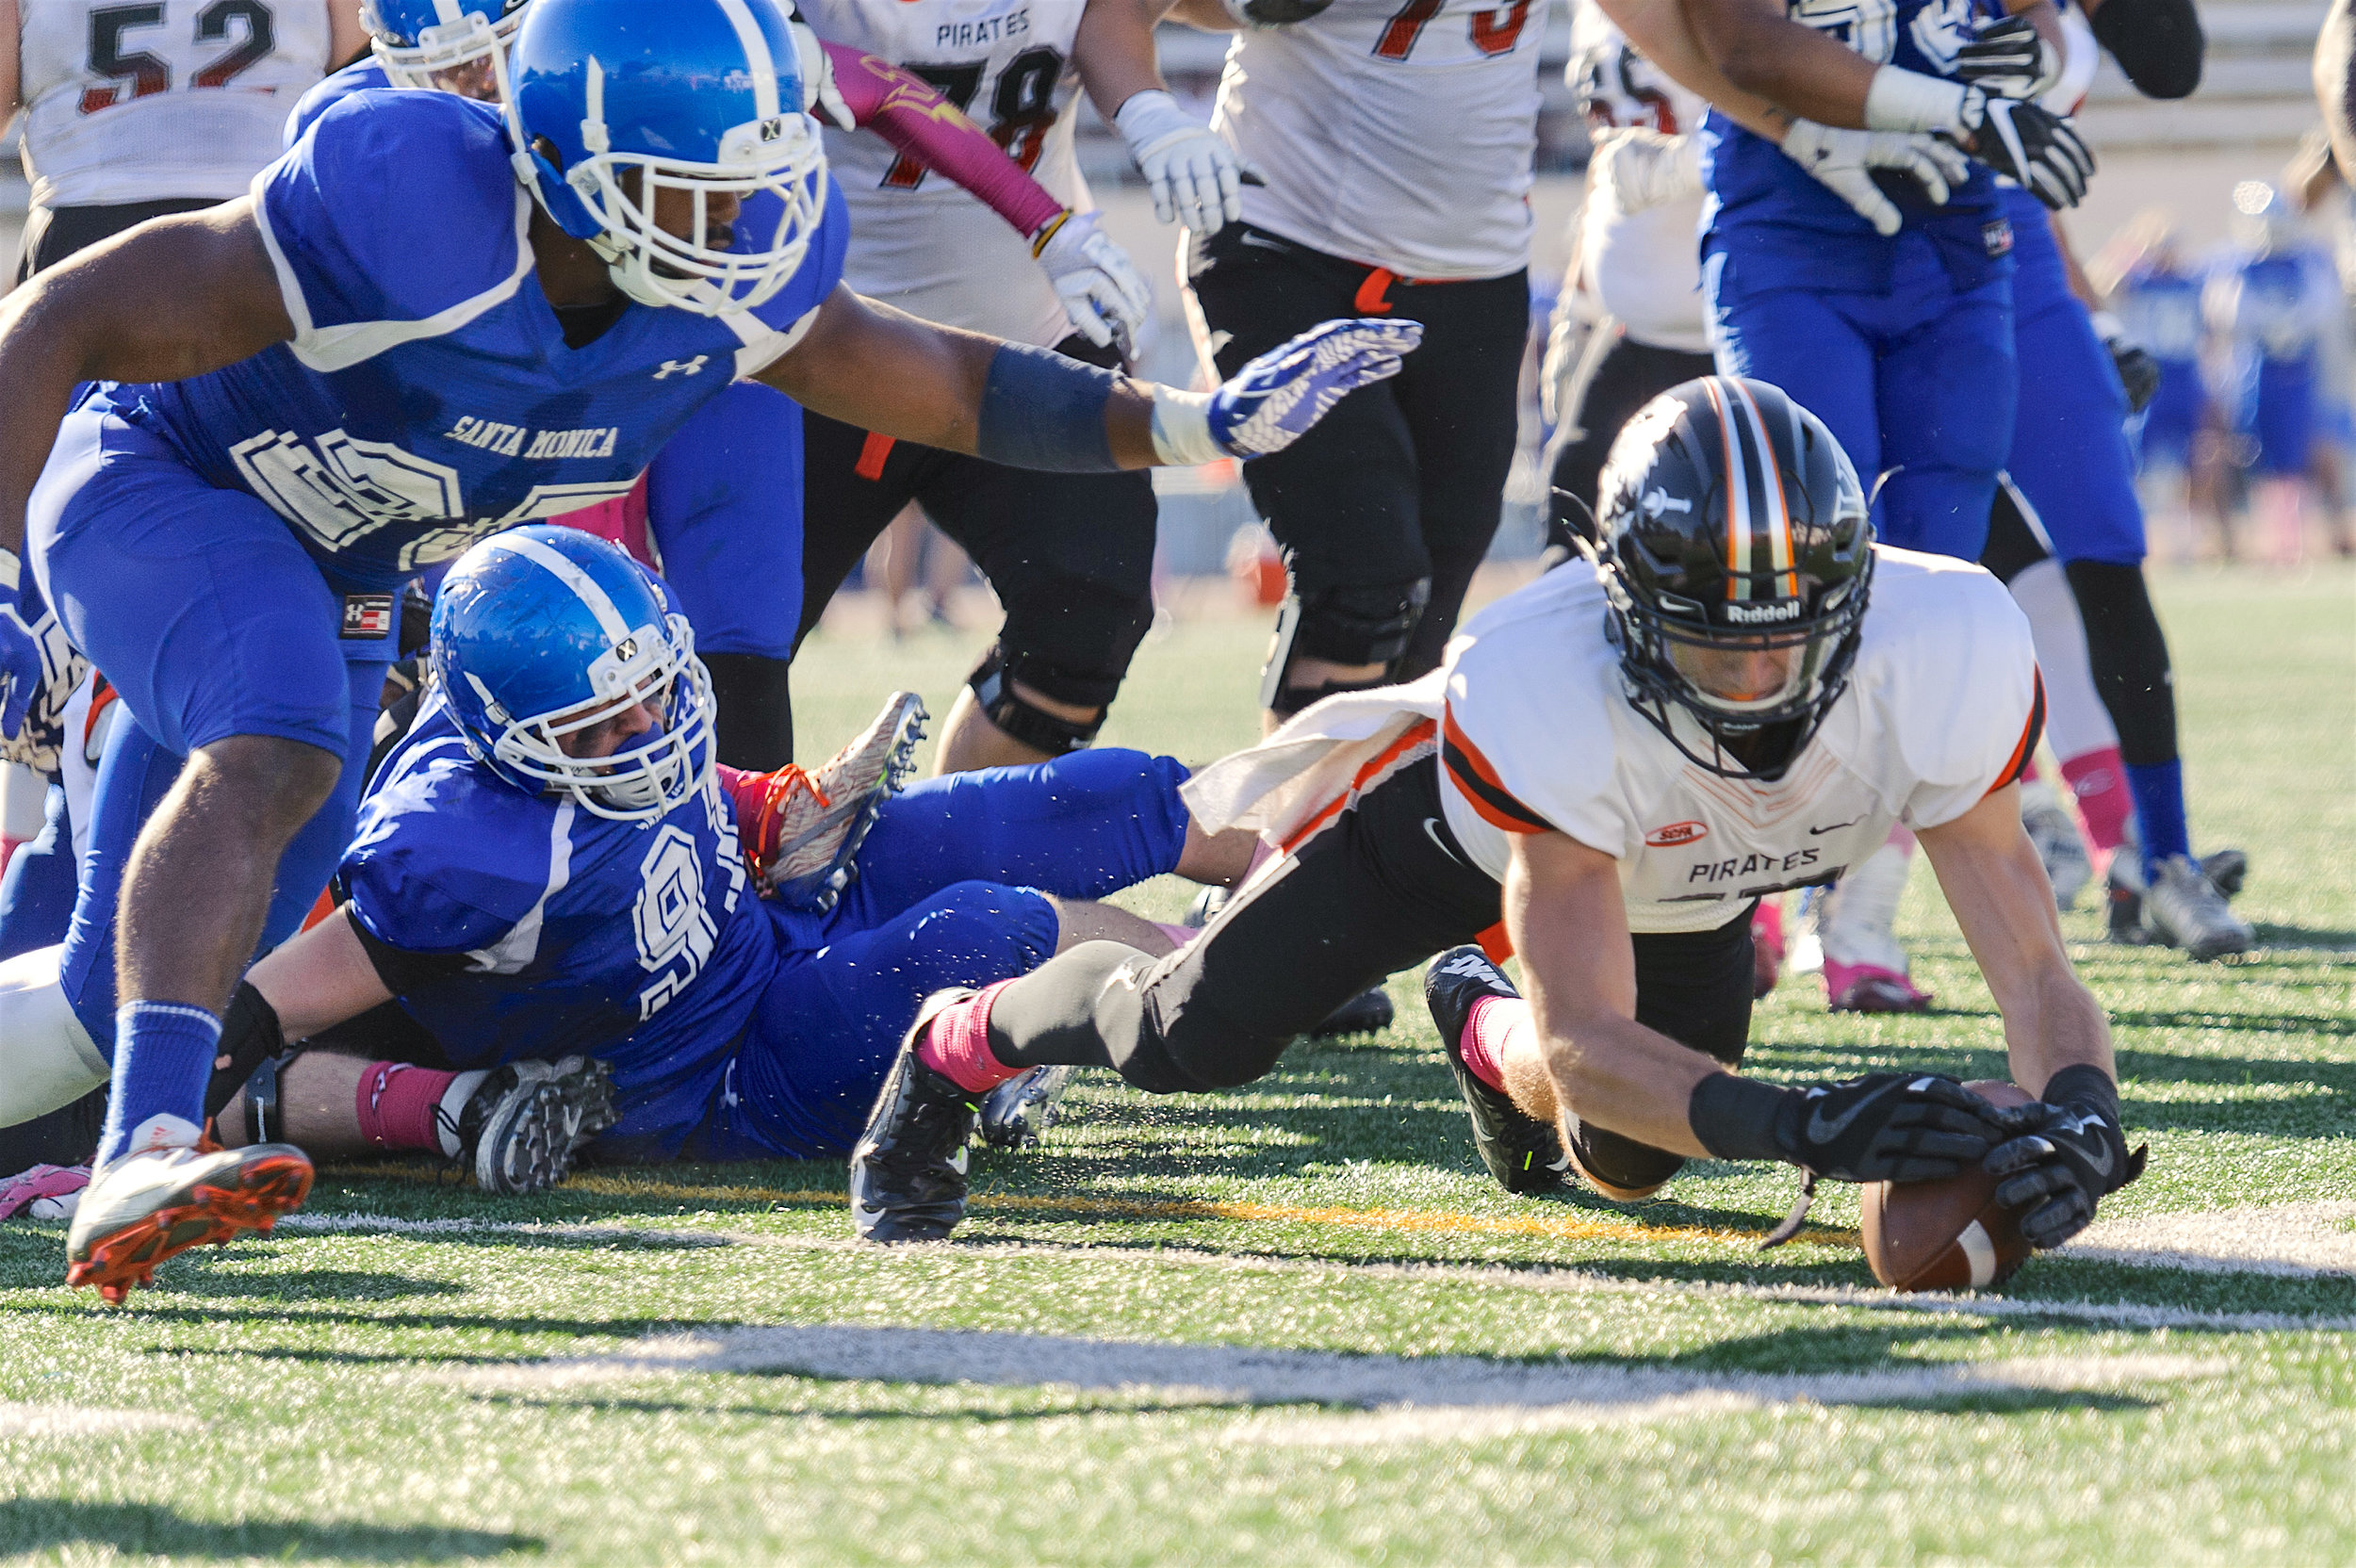 Conner MacArthur (17,Right) of Ventura College retrieves a fumbled ball, preventing a turnover of the Pirates. The Santa Monica College Corsairs lose to the Ventura College Pirates 0-55. The game was held at the Corsair Stadium at the Santa Monica College Main Campus in Santa Monica, Calif.. October 21, 2017. (Photo by: Justin Han/Corsair Staff)